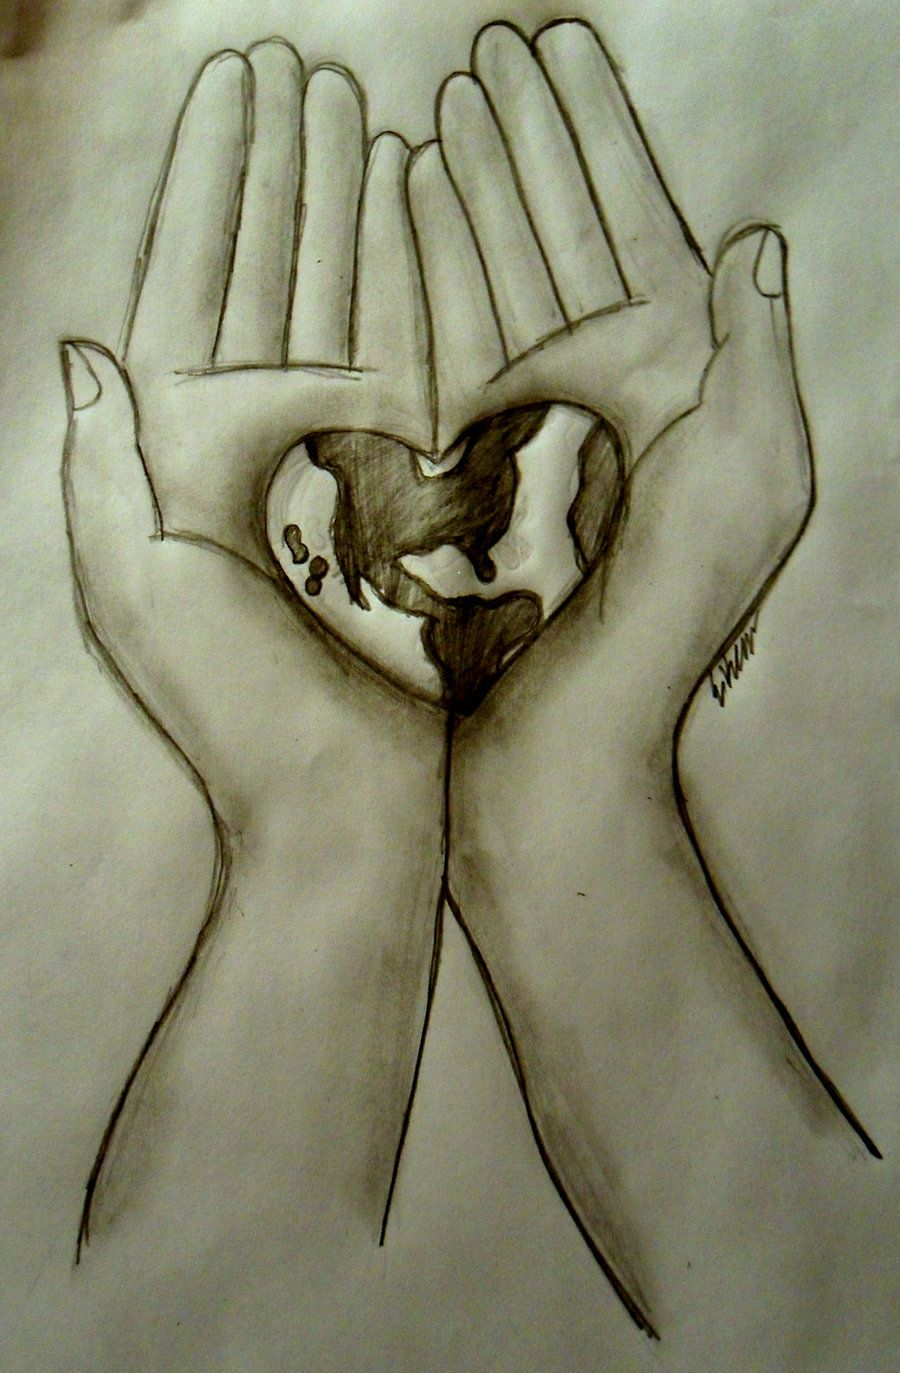 900x1373 Hands Holding World By Tinkerbell229.jpg Theme What